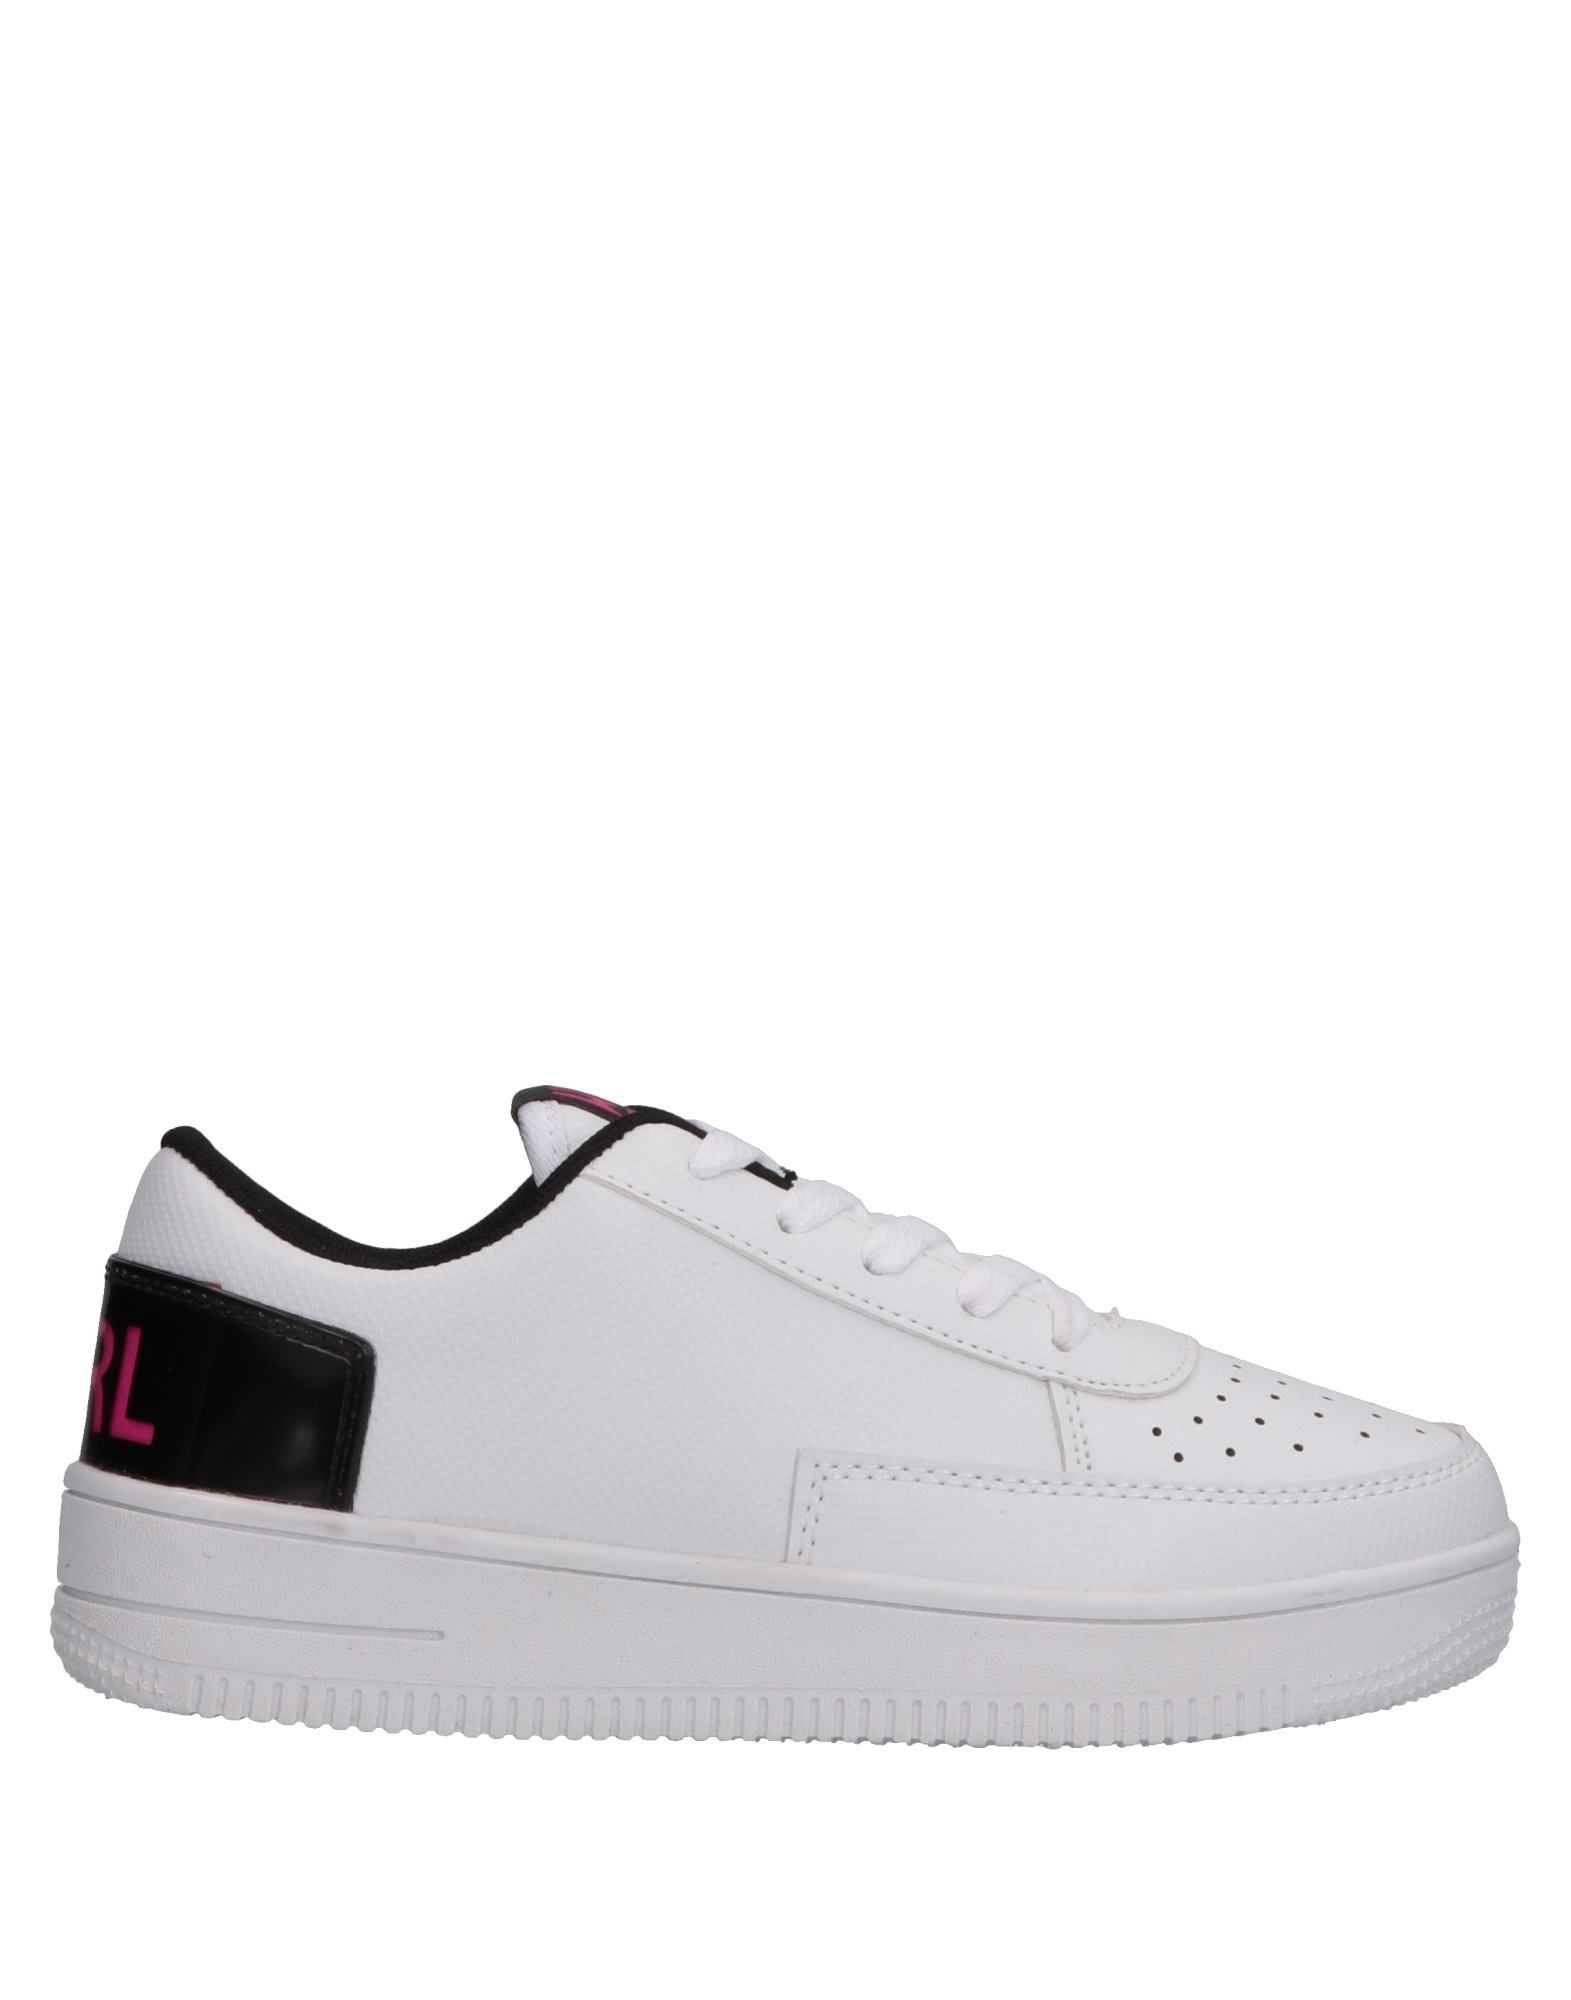 Wize & Ope Sneakers - Women Wize & Ope Sneakers Sneakers Sneakers online on  United Kingdom - 11581667NW e09c55